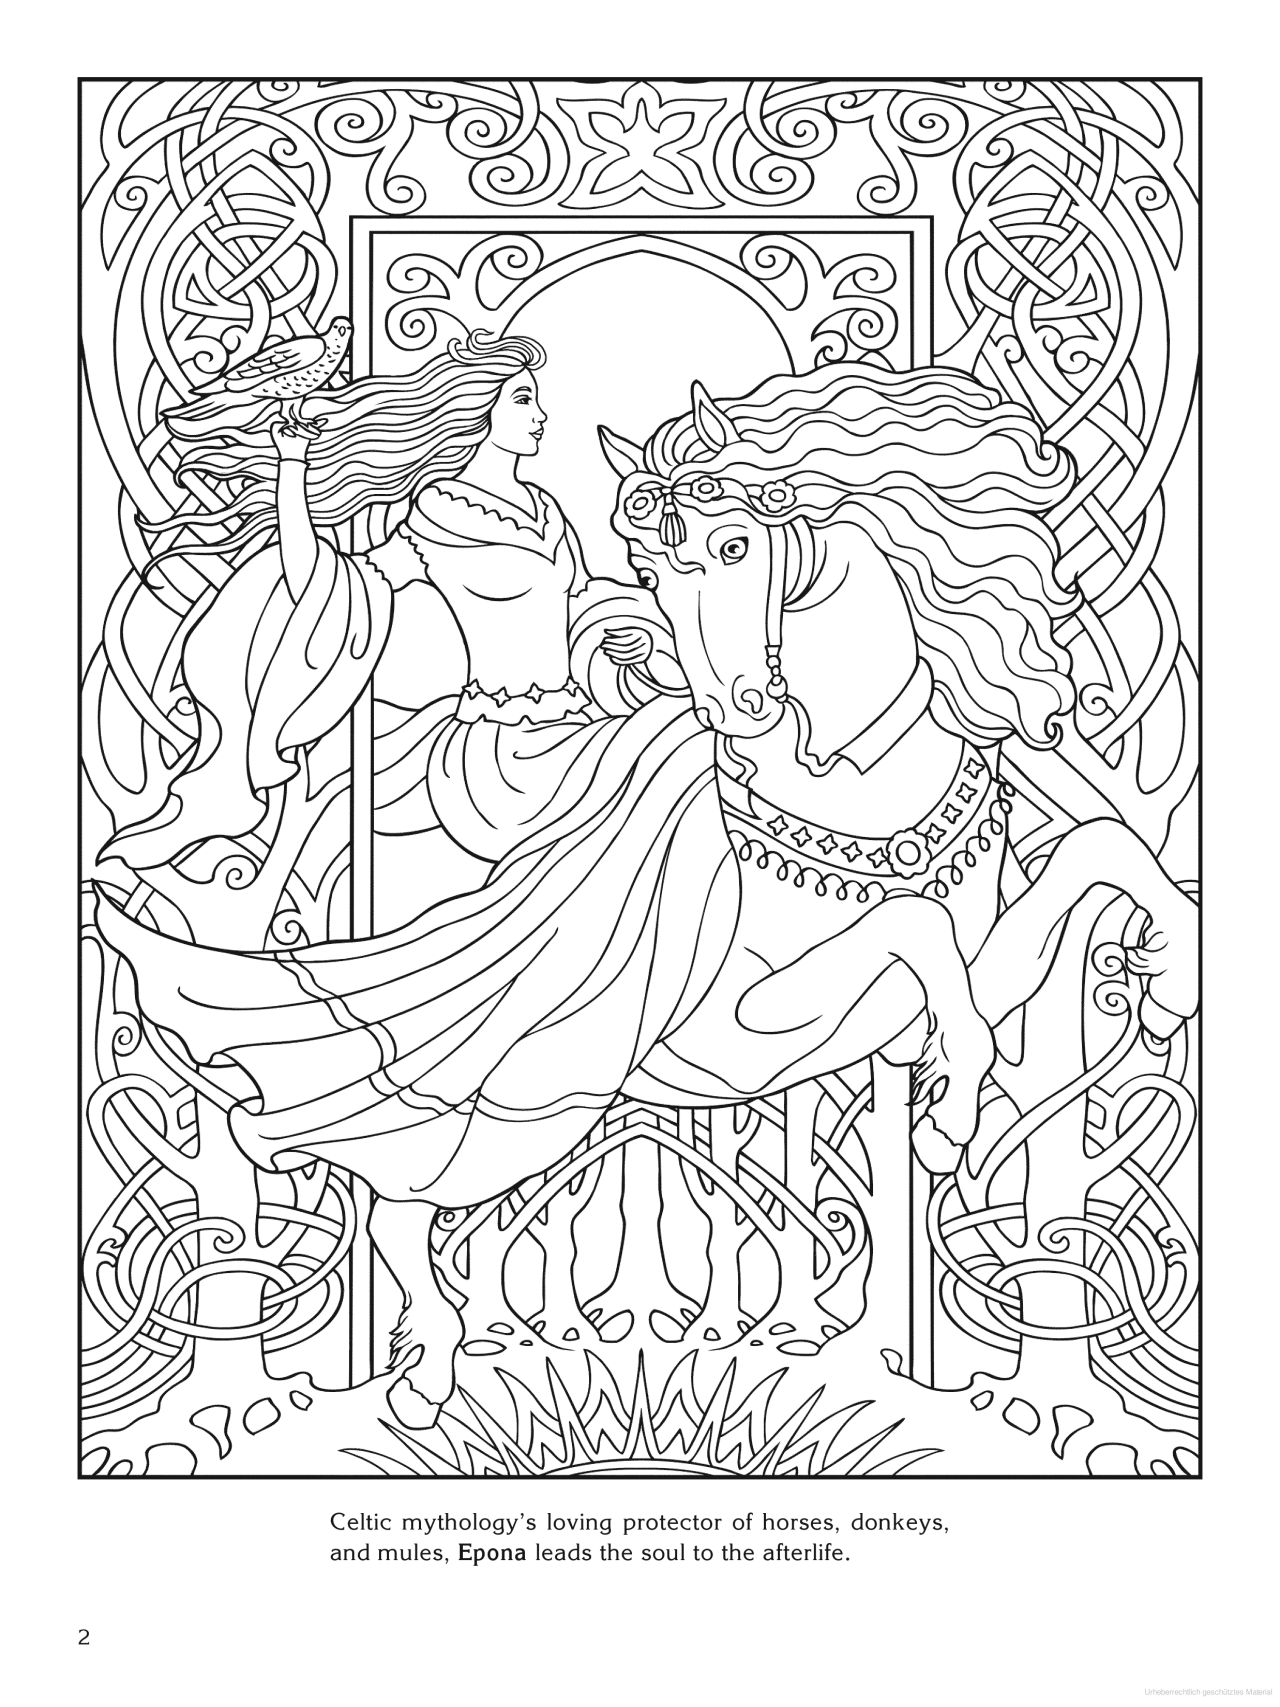 Pin By Susie Petri On Lineart: Fantasy | Coloring Books